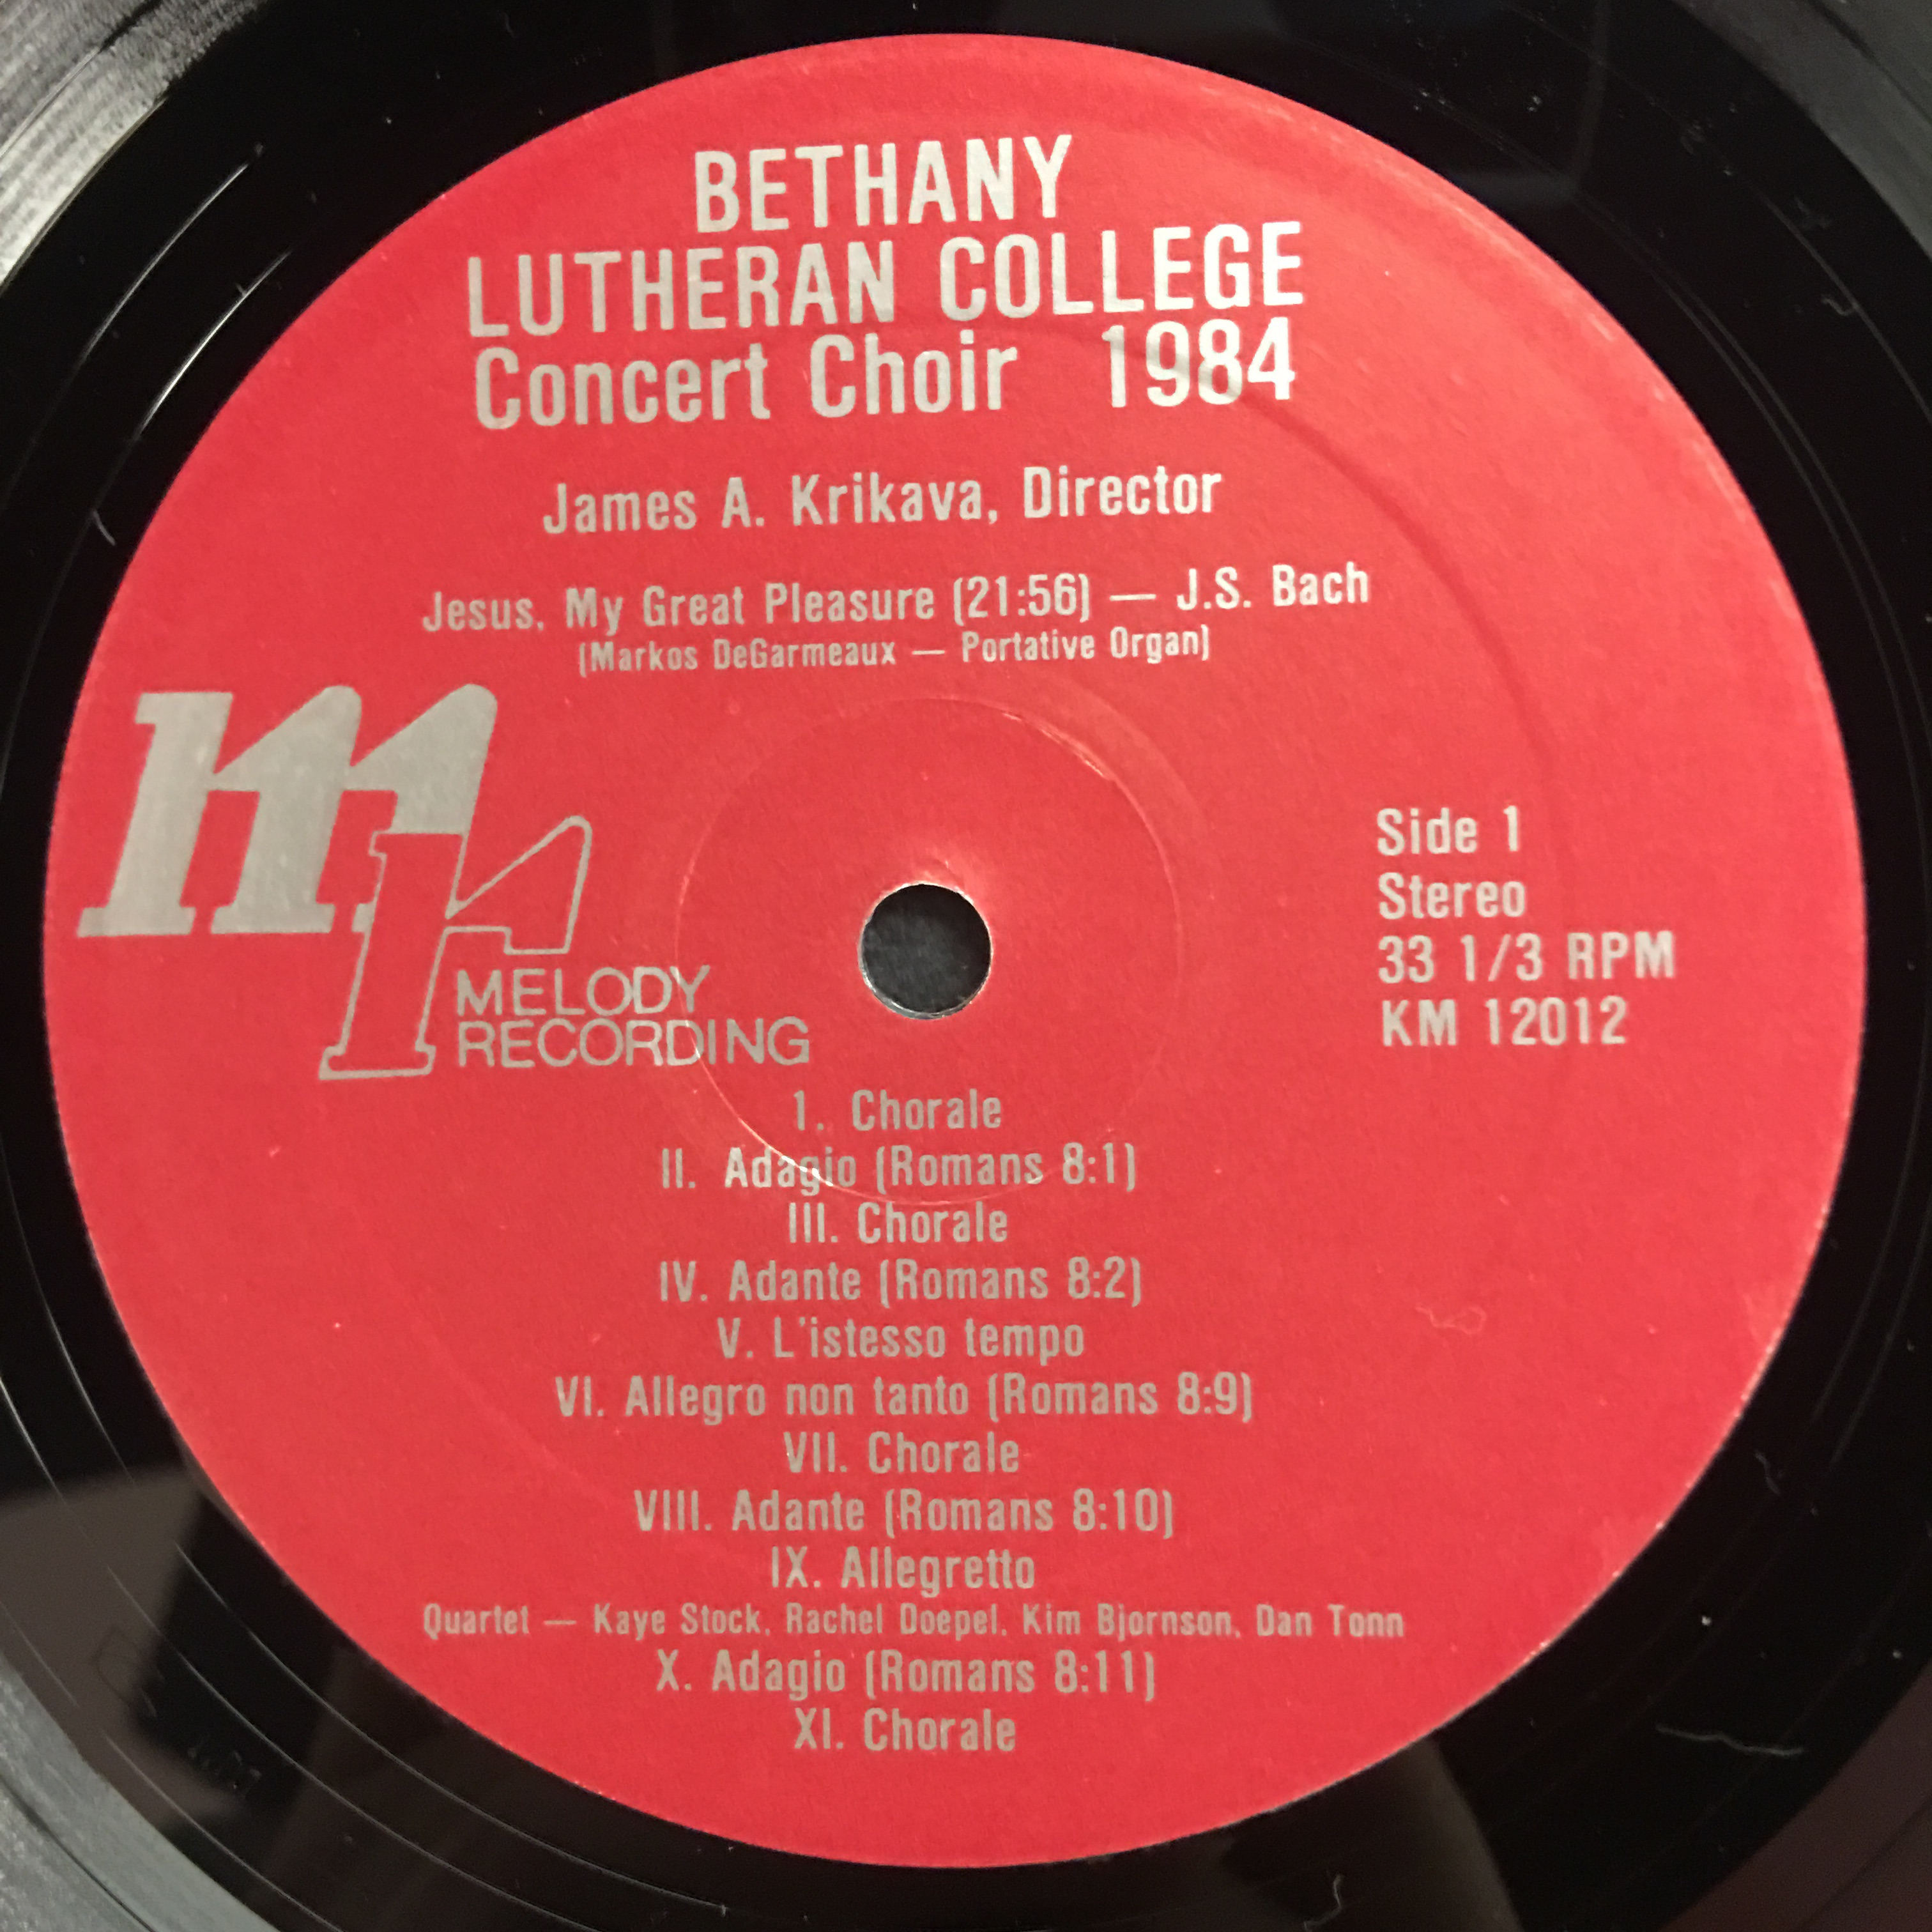 The Bethany Lutheran College Choir 1984 Vinyl 1 Side 1